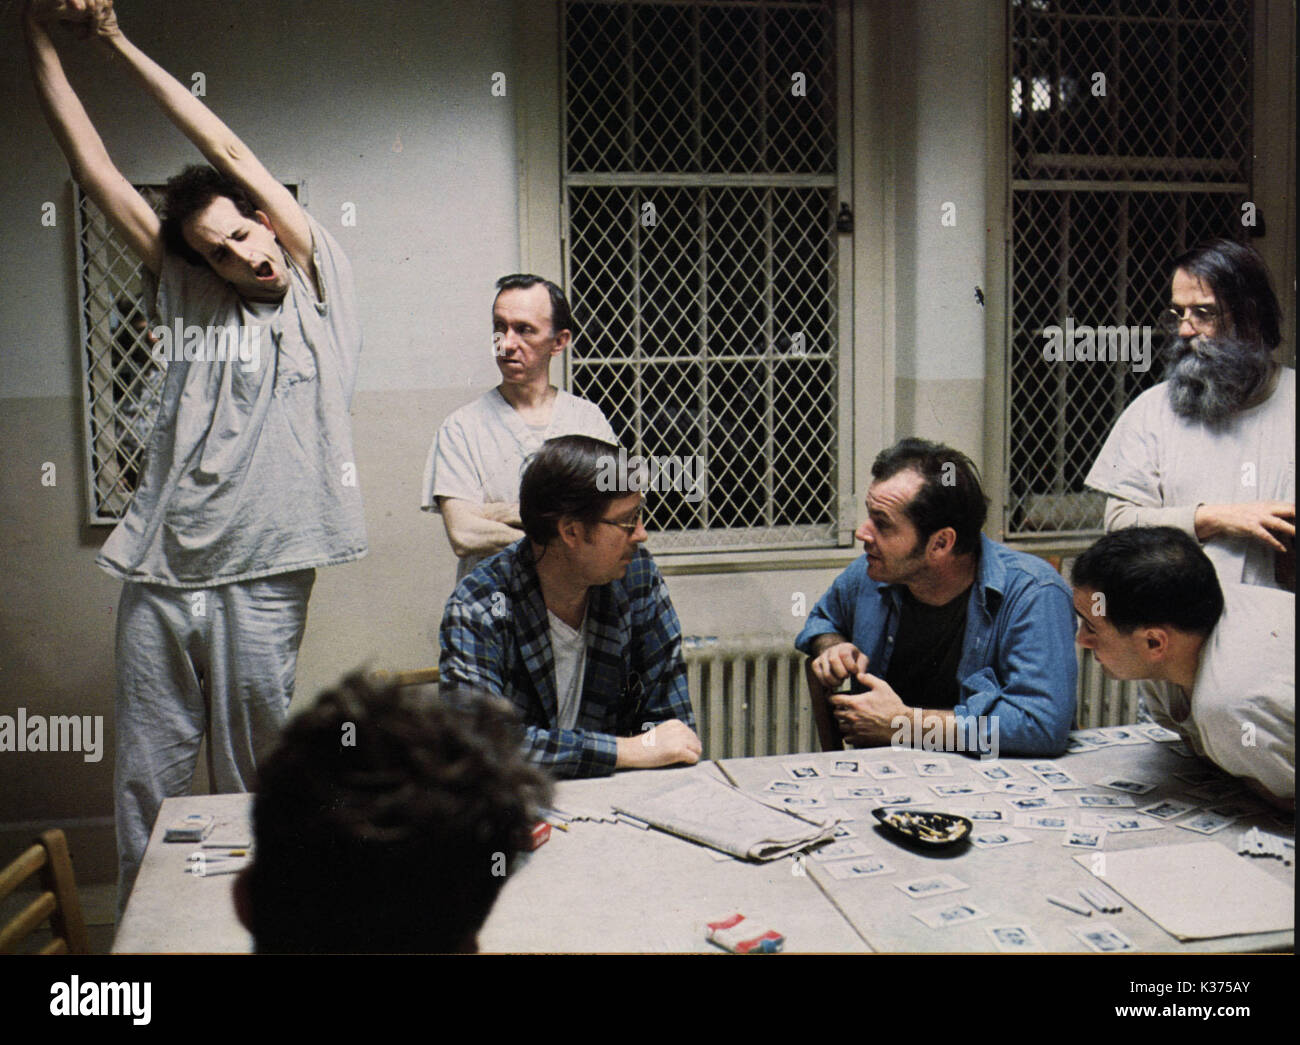 ONE FLEW OVER THE CUCKOO'S NEST COPYRIGHT: UNITED ARTISTS 0034213.JPG ONE FLEW OVER THE CUCKOO'S NEST COPYRIGHT: UNITED ARTISTS 0034214.JPG ONE FLEW OVER THE CUCKOO'S NEST (US1975) JACK NICHOLSON, LOUISE FLETCHER     Date: 1975 - Stock Image